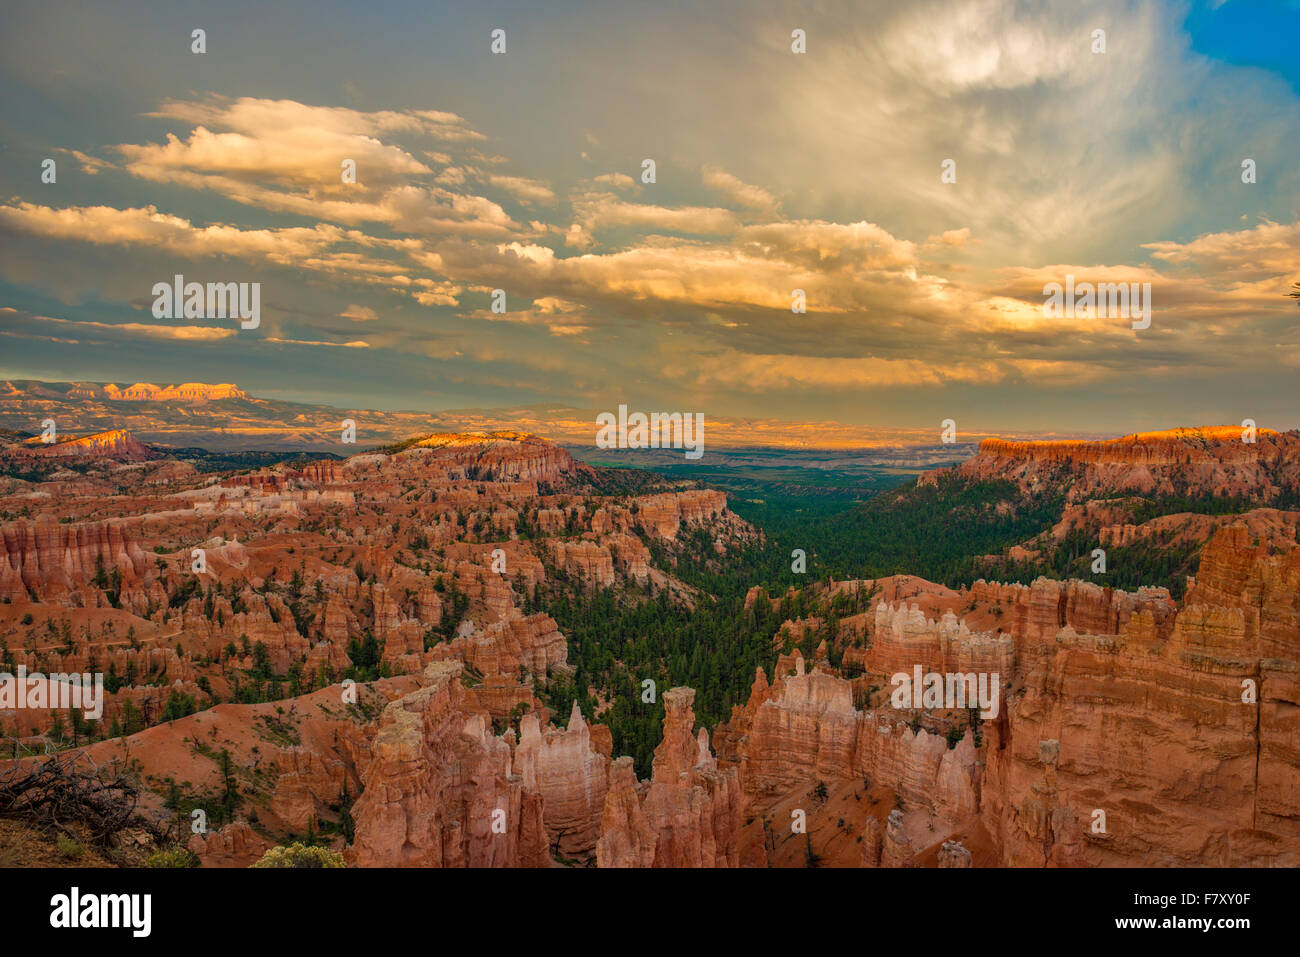 Sunset Point view, Bryce Canyon National Park, Utah, Wasatch limestone pinnacles - Stock Image